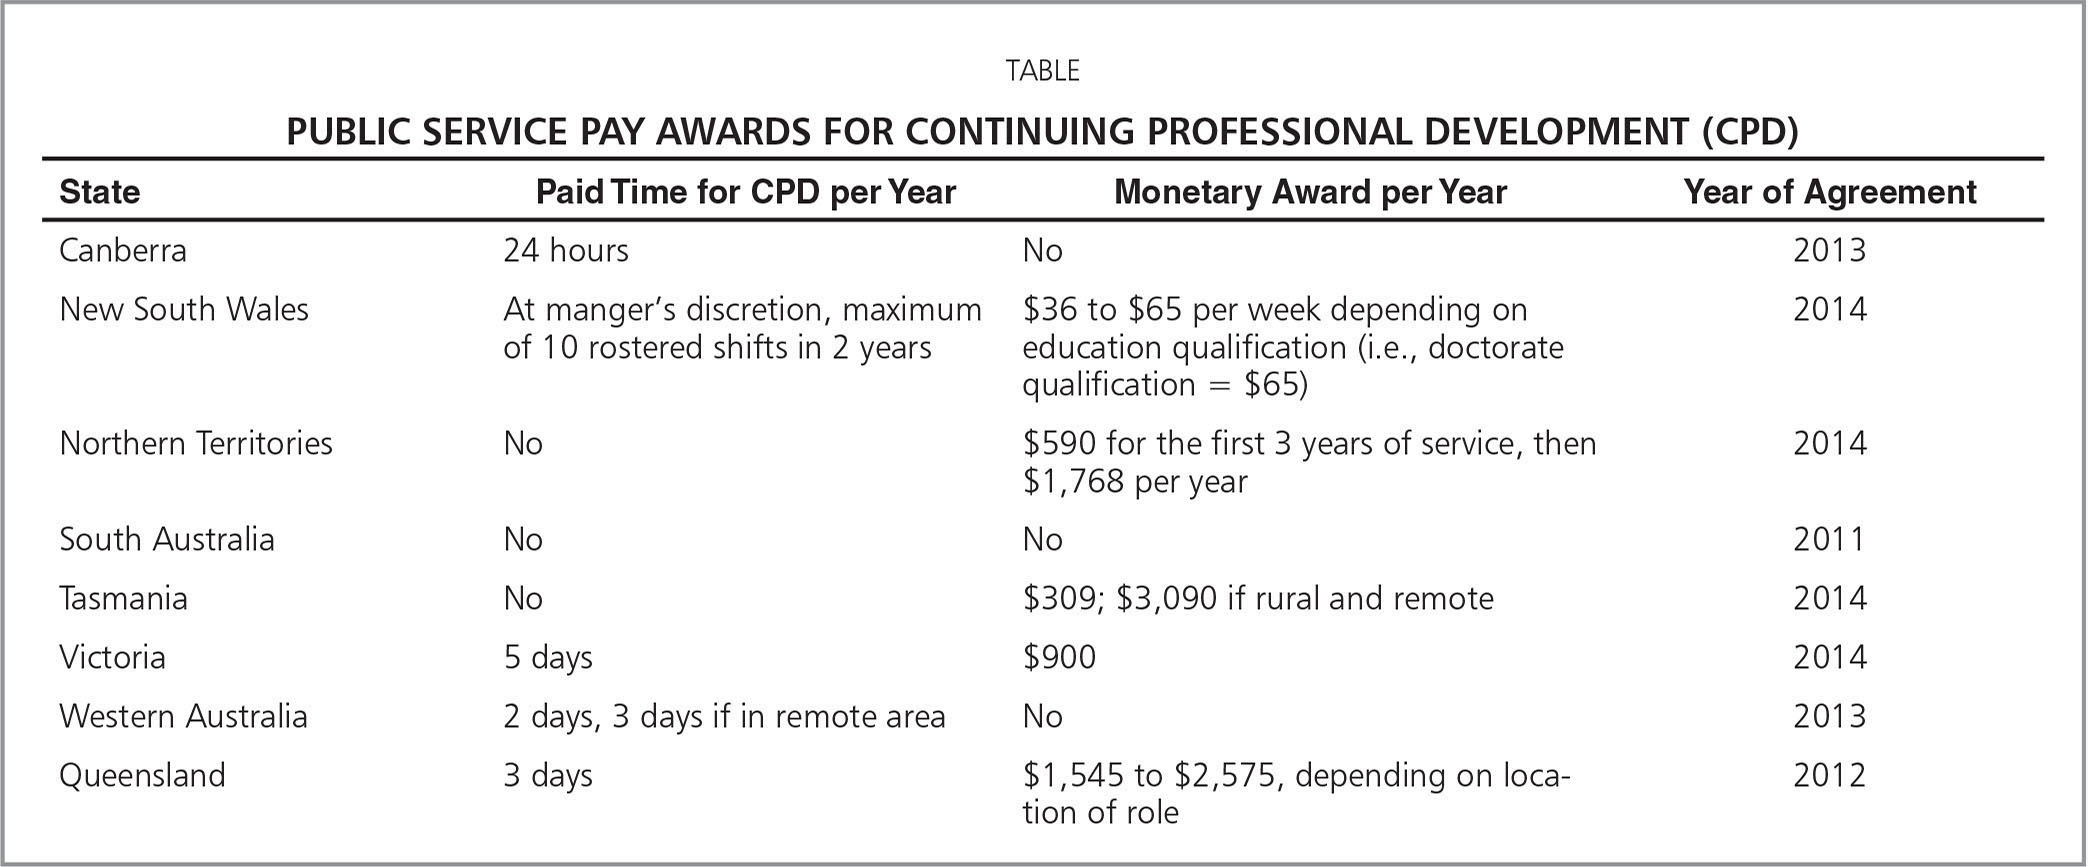 Public Service Pay Awards for Continuing Professional Development (CPD)